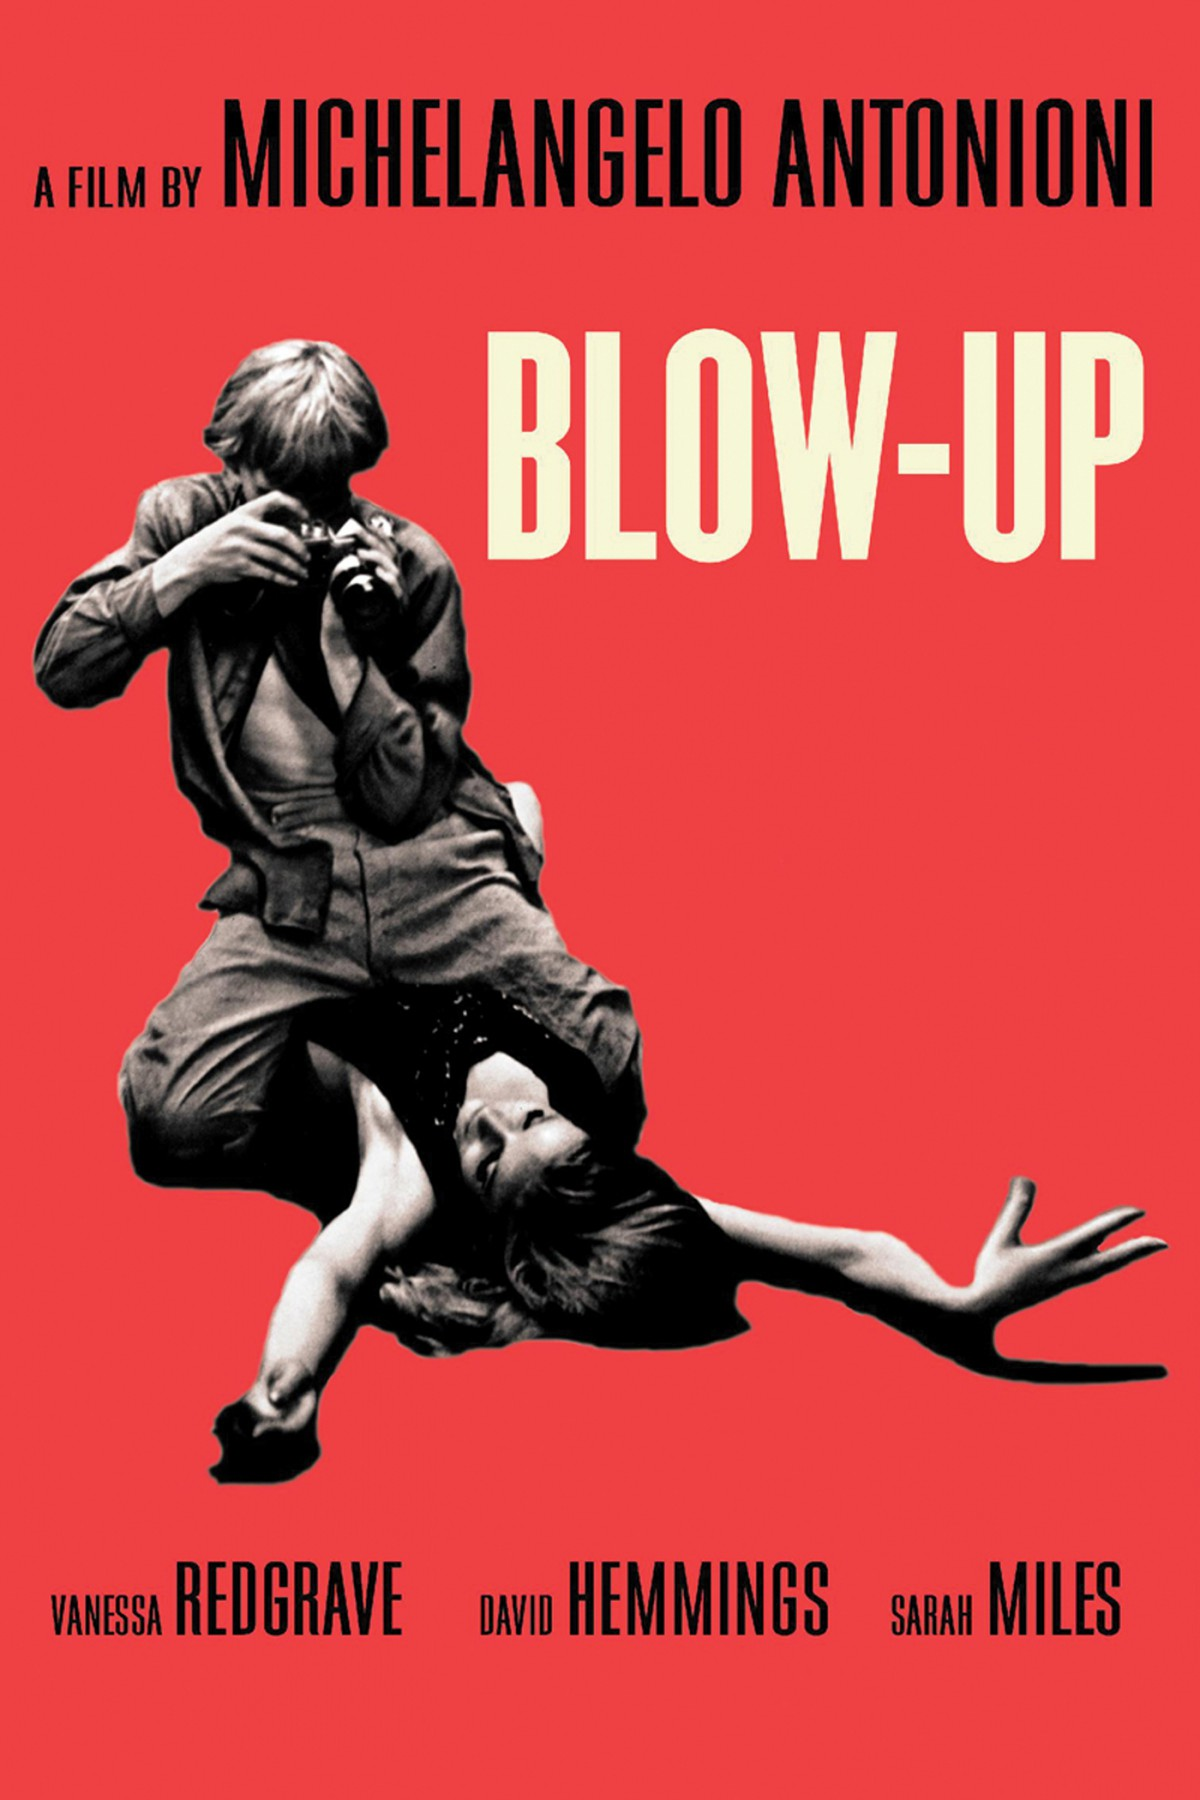 20. Blow-up (1966)